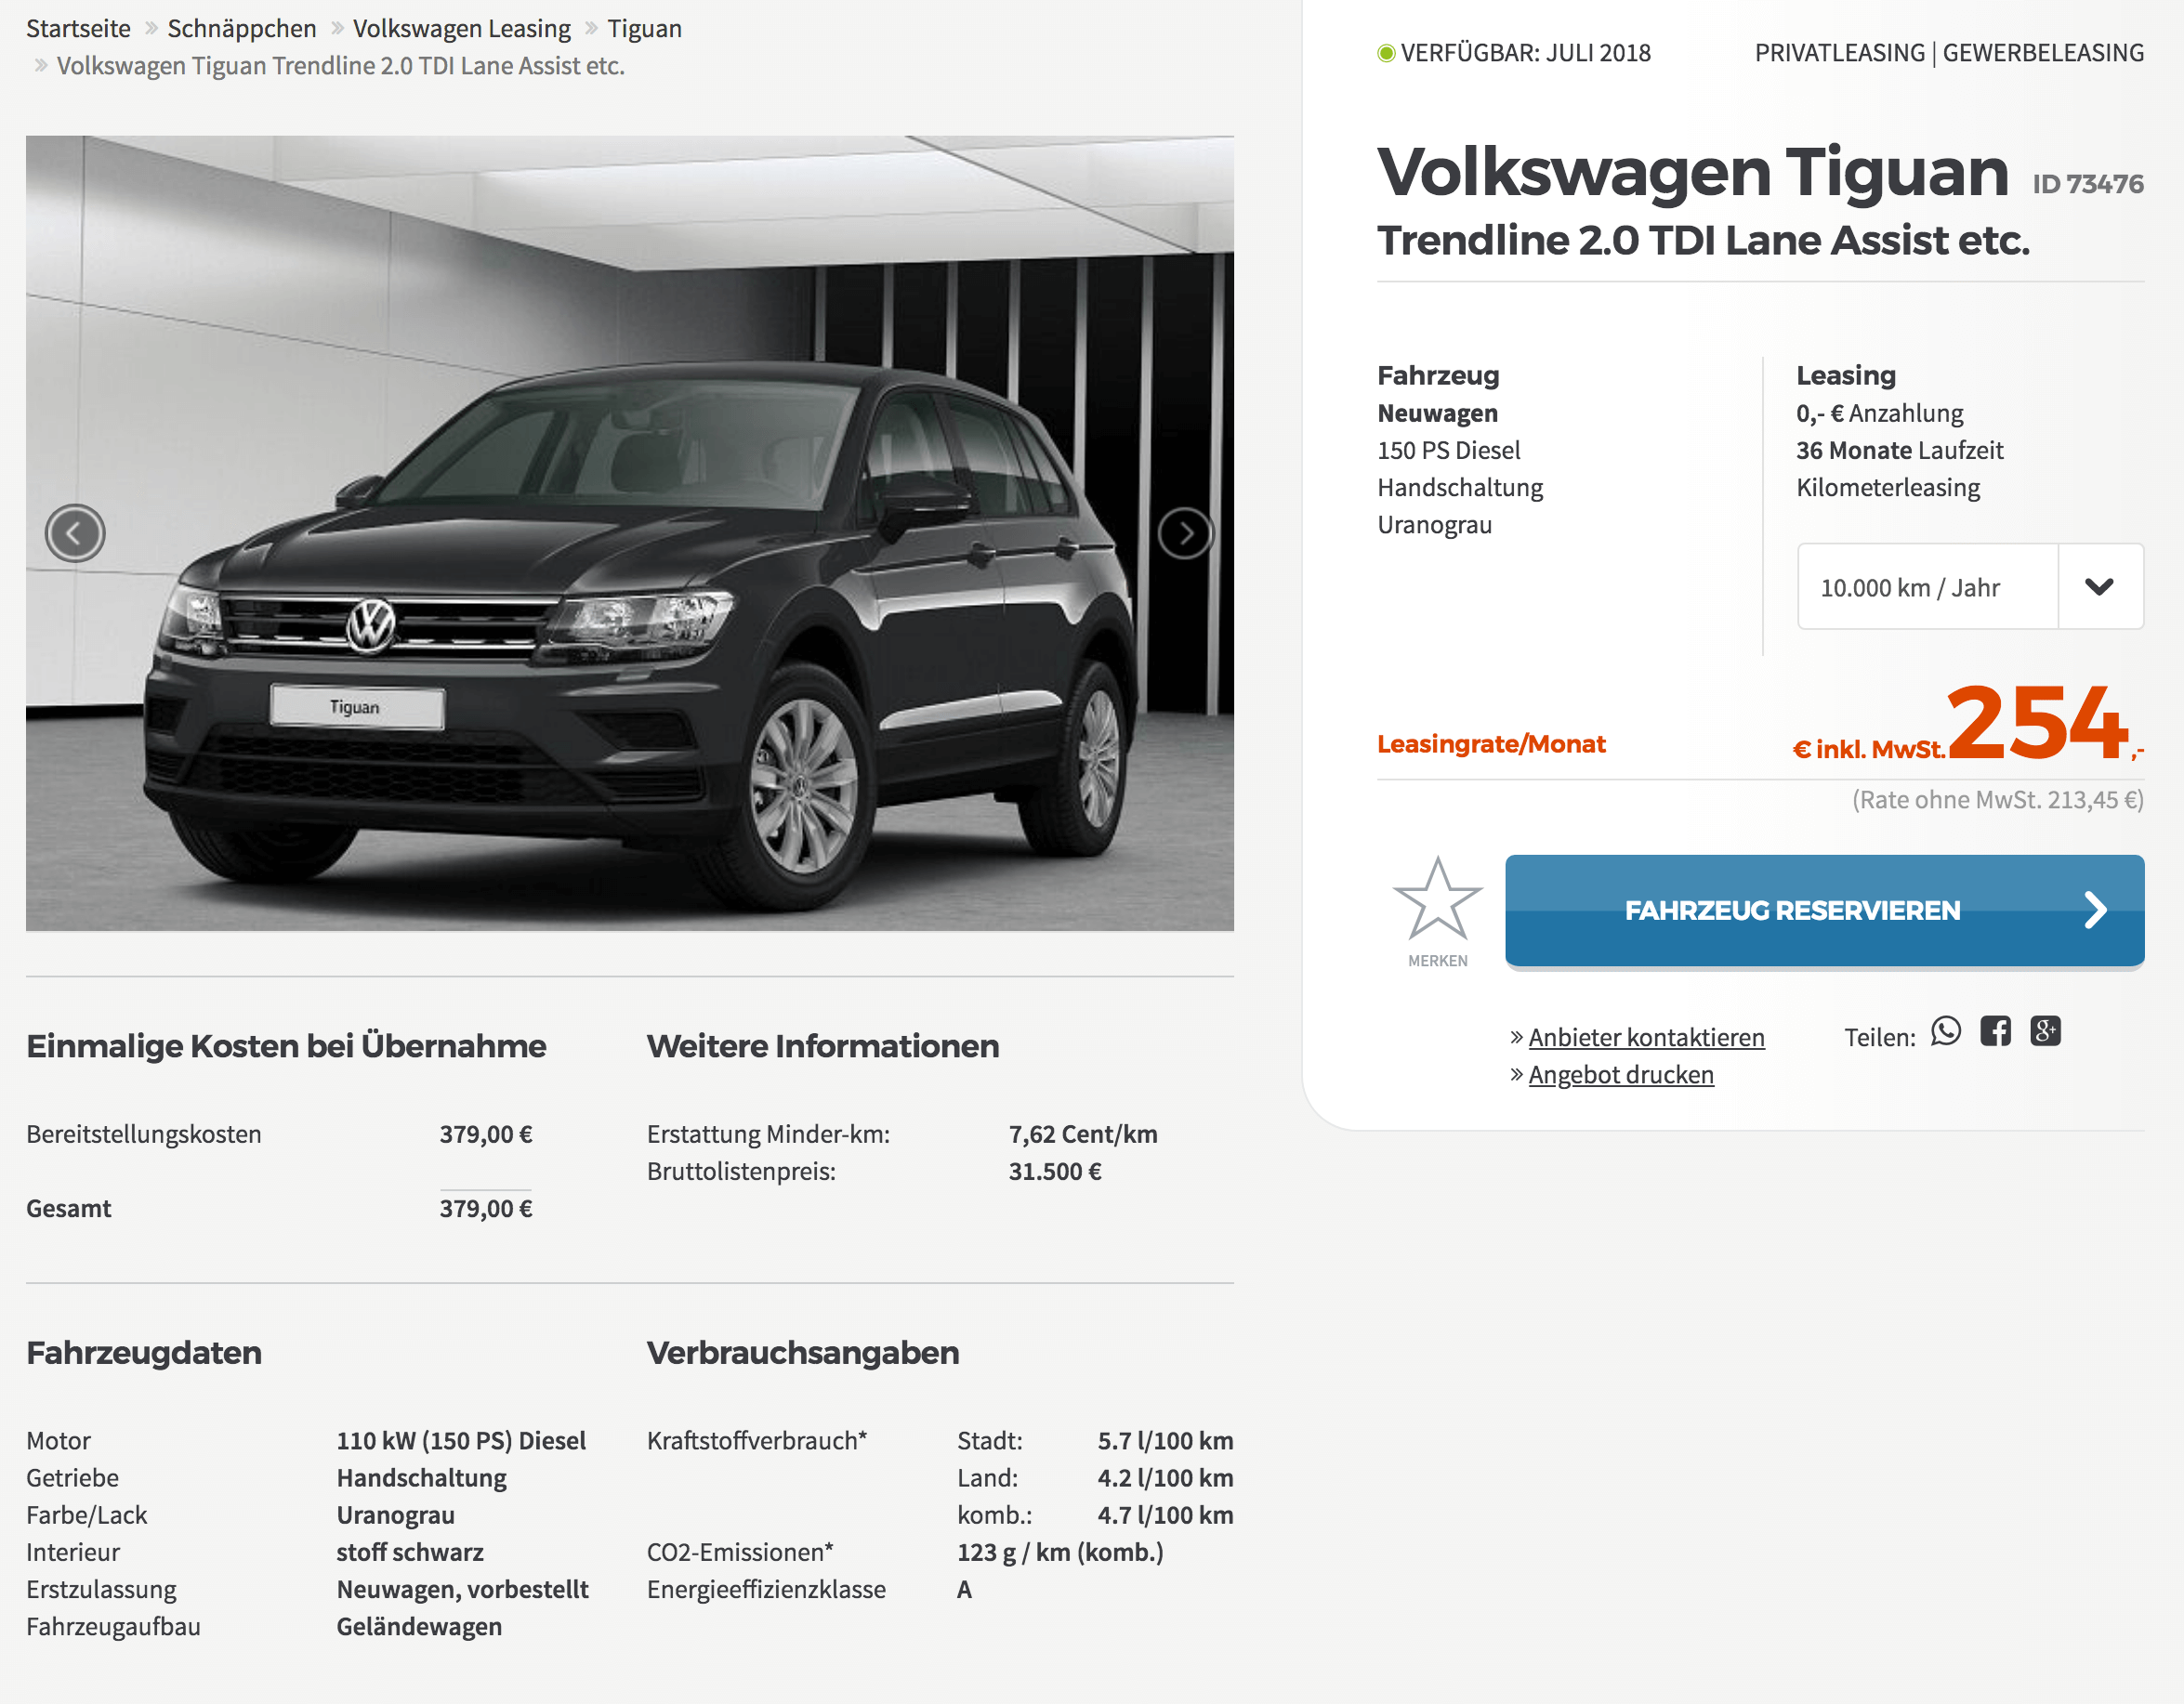 vw tiguan leasing f r 254 euro im monat brutto. Black Bedroom Furniture Sets. Home Design Ideas